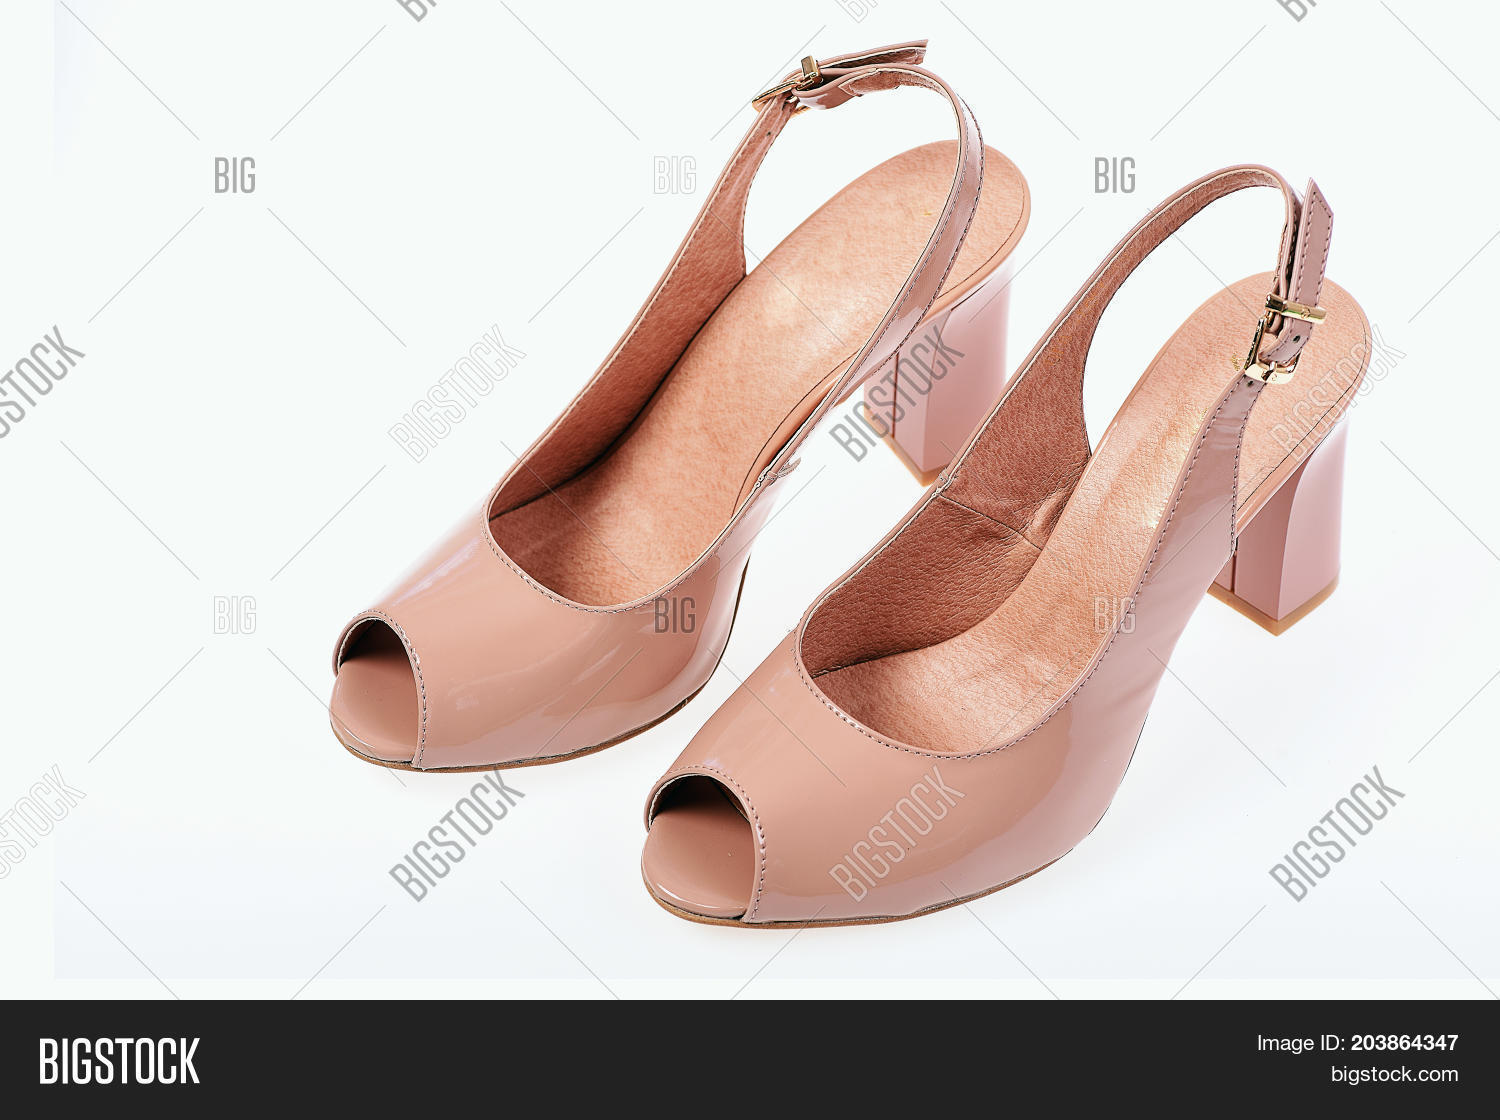 eb2190f6b Womens patent leather shoes top view. Summer accessories  high heel sandals.  Fashion and beauty concept. Female sandals isolated on white background.